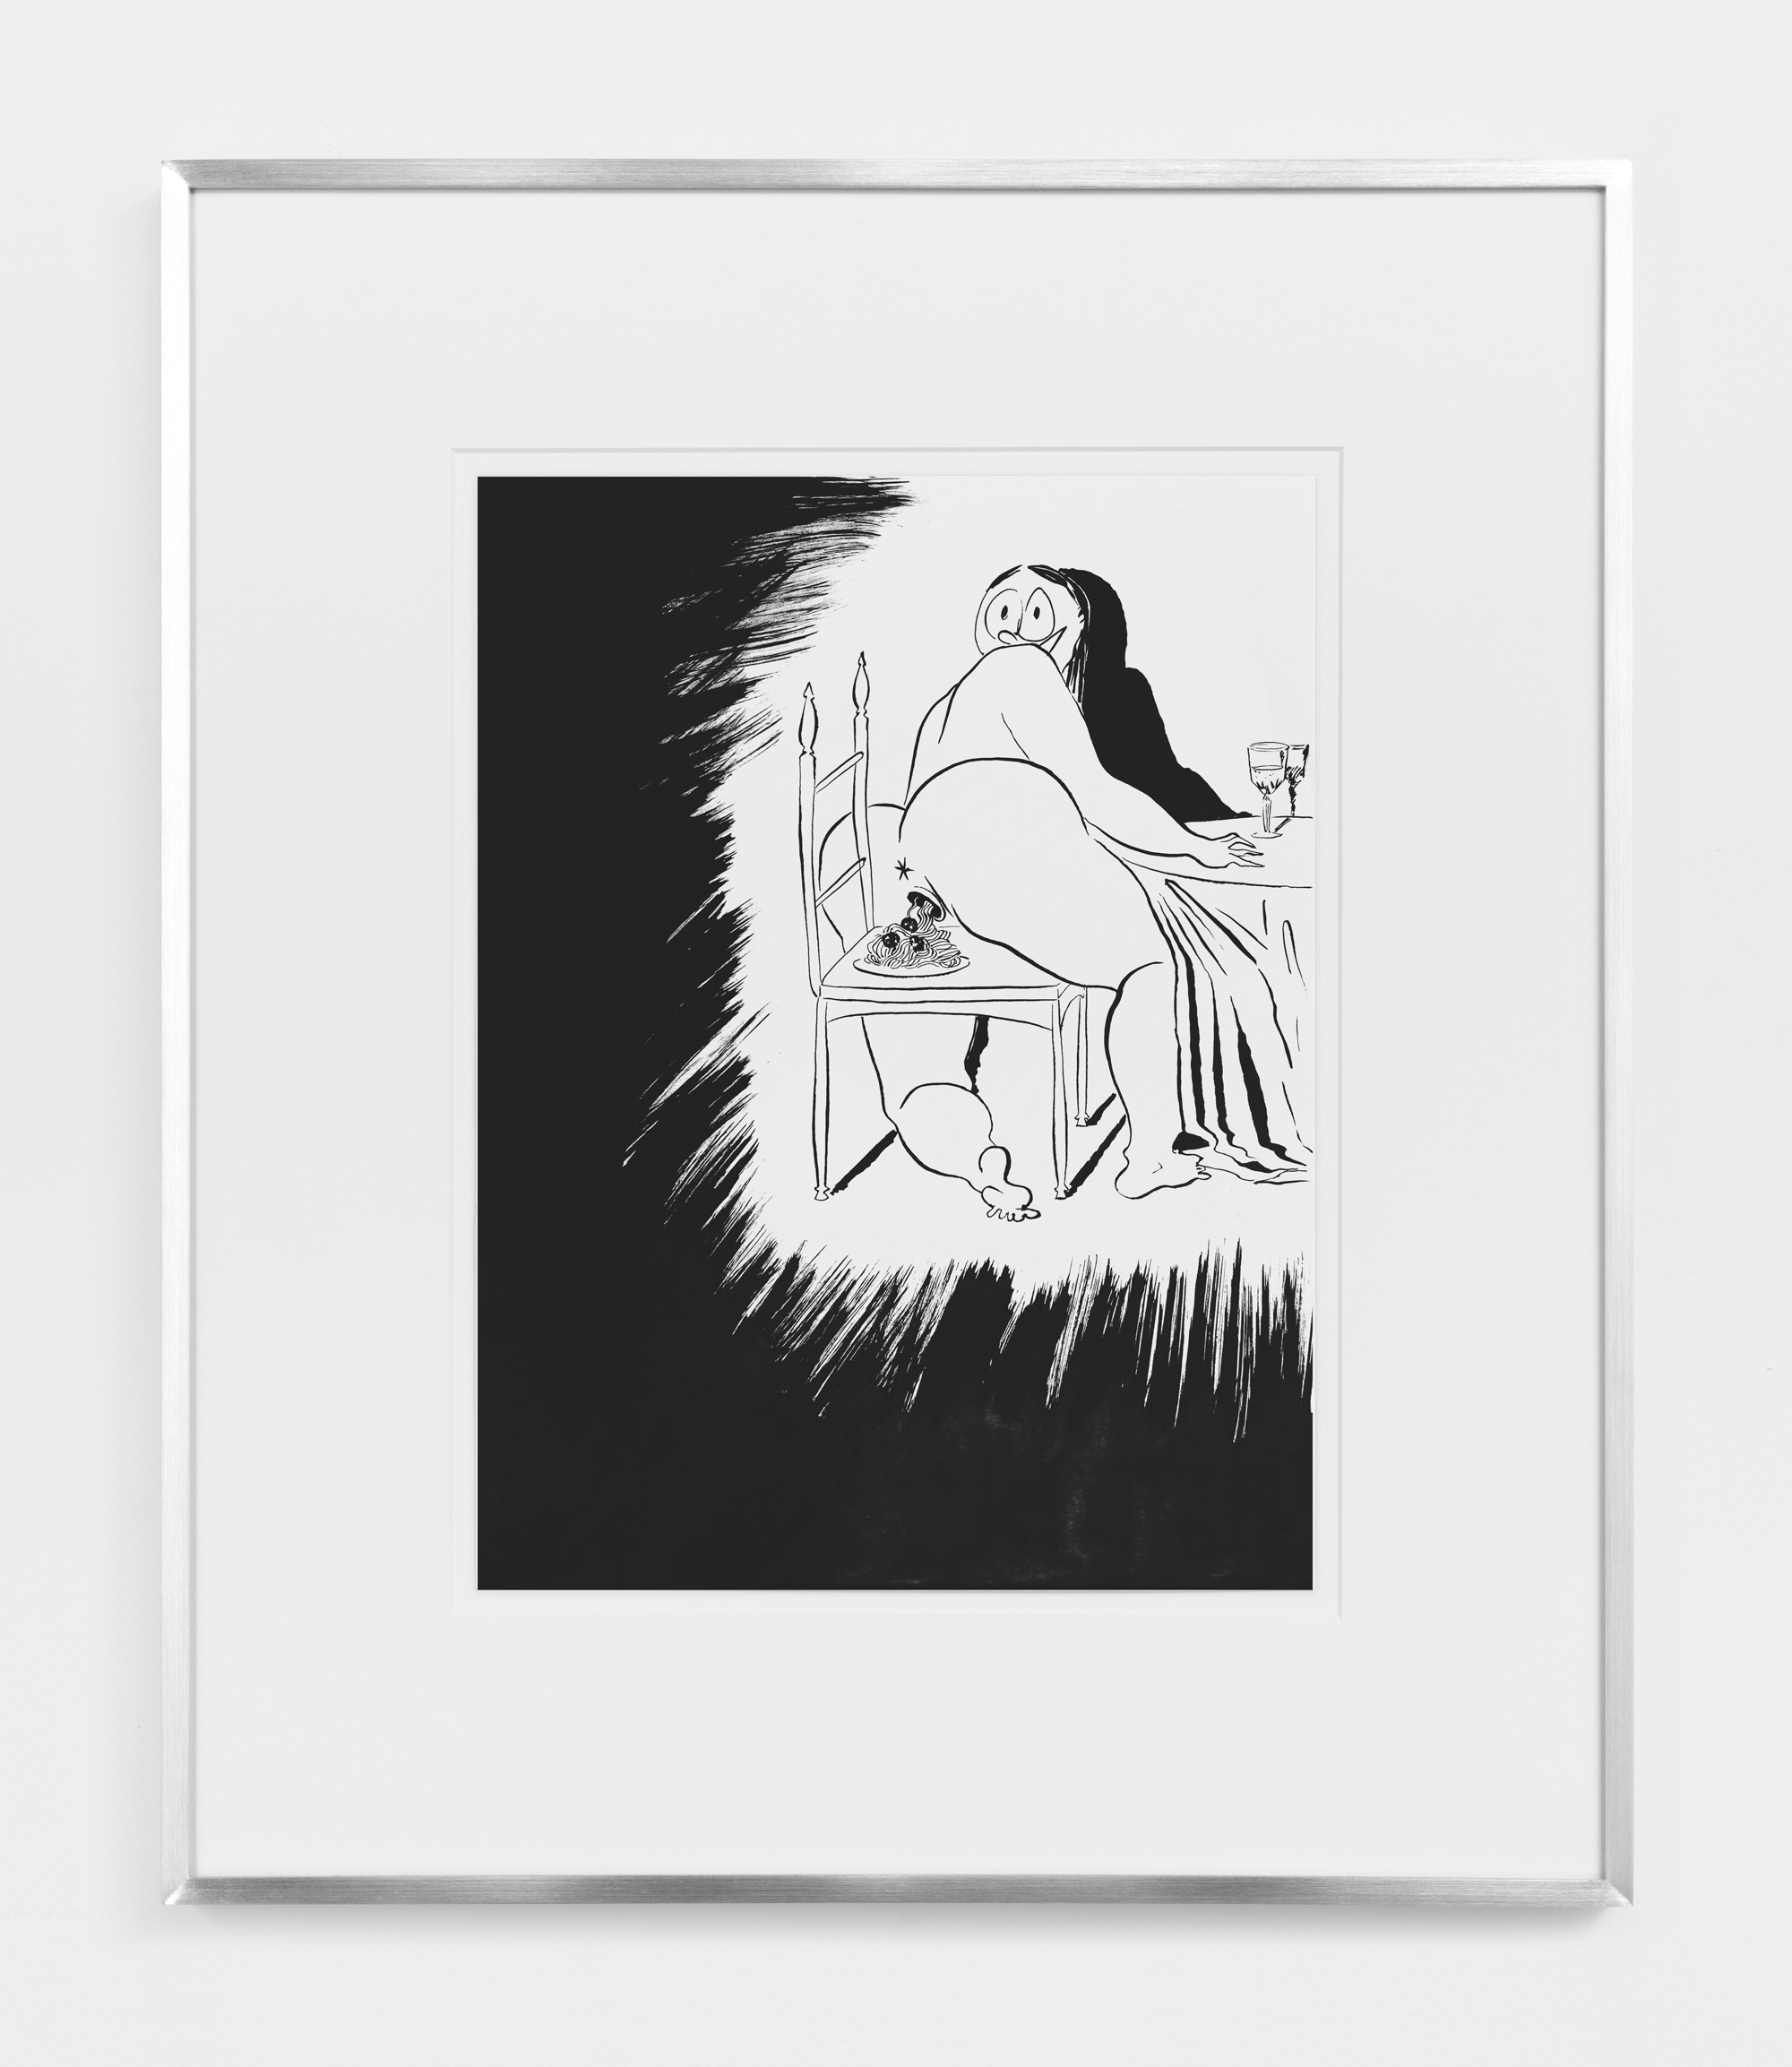 Ebecho Muslimova, Fatebe Surprise, 2019, Sumi ink on paper, 12h x 9w in.